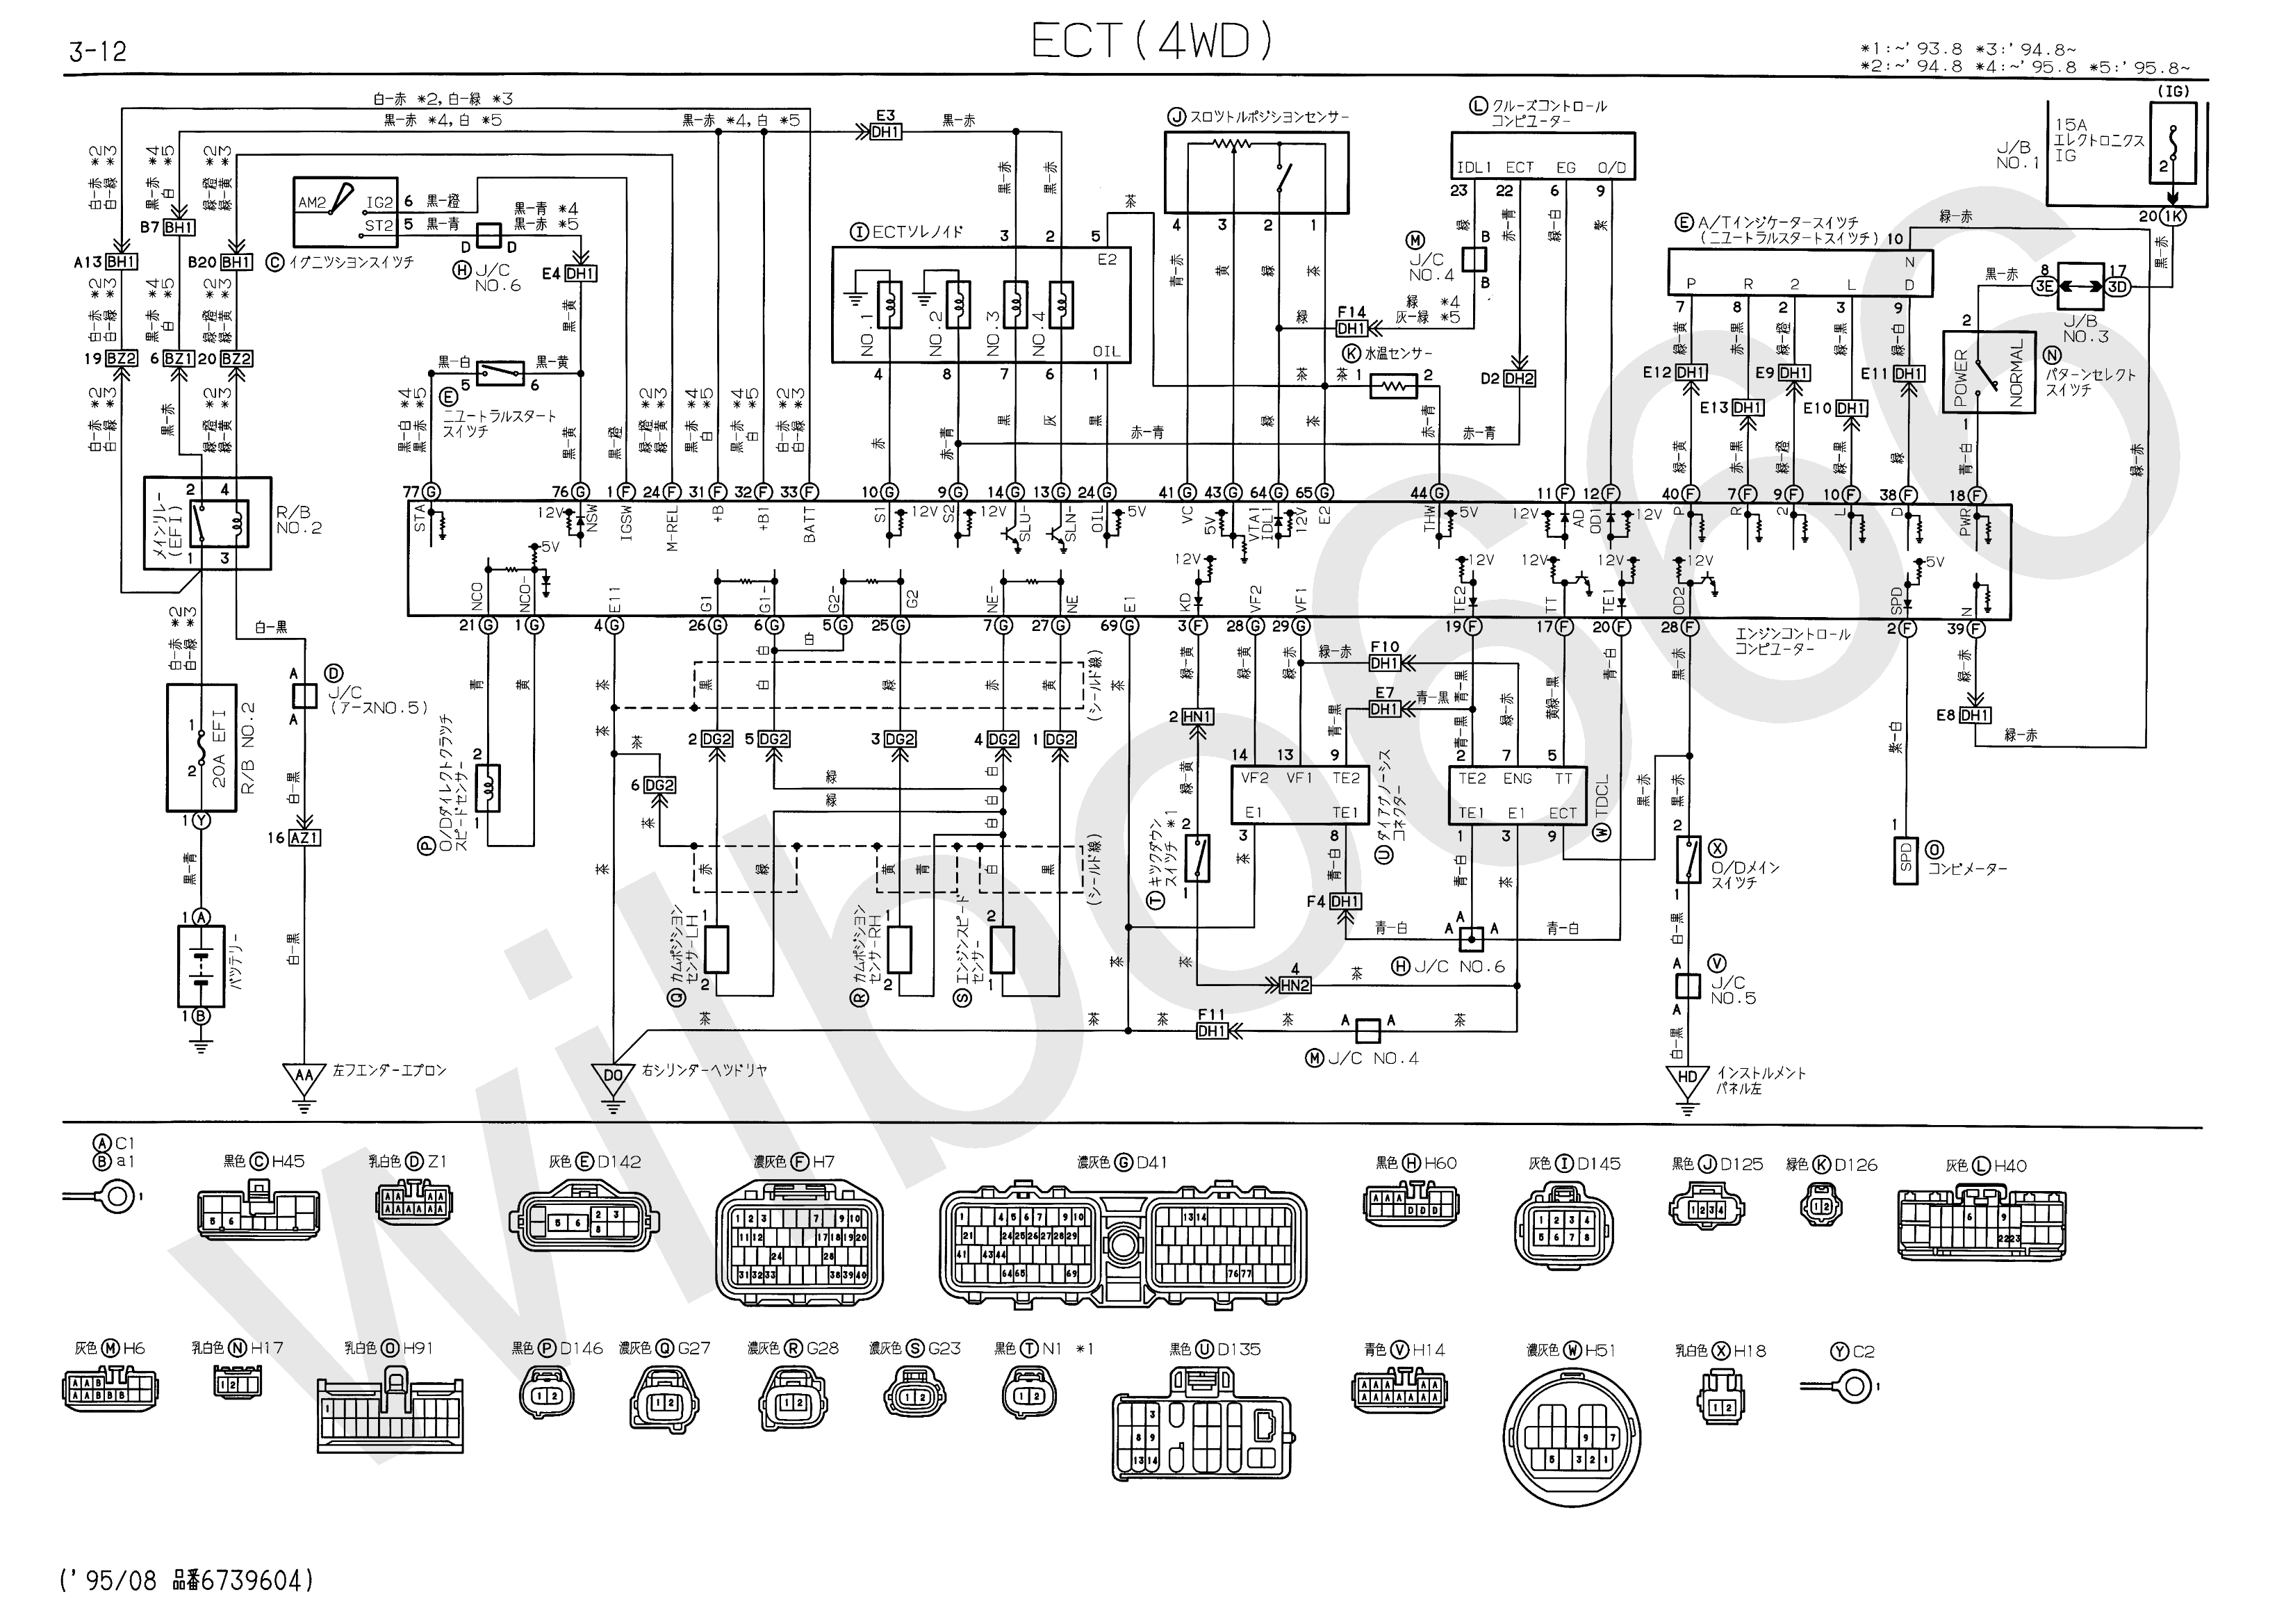 2001 nissan maxima engine wiring diagram wilbo666 / 1uz-fe uzs143 aristo engine wiring pat engine wiring diagram #15